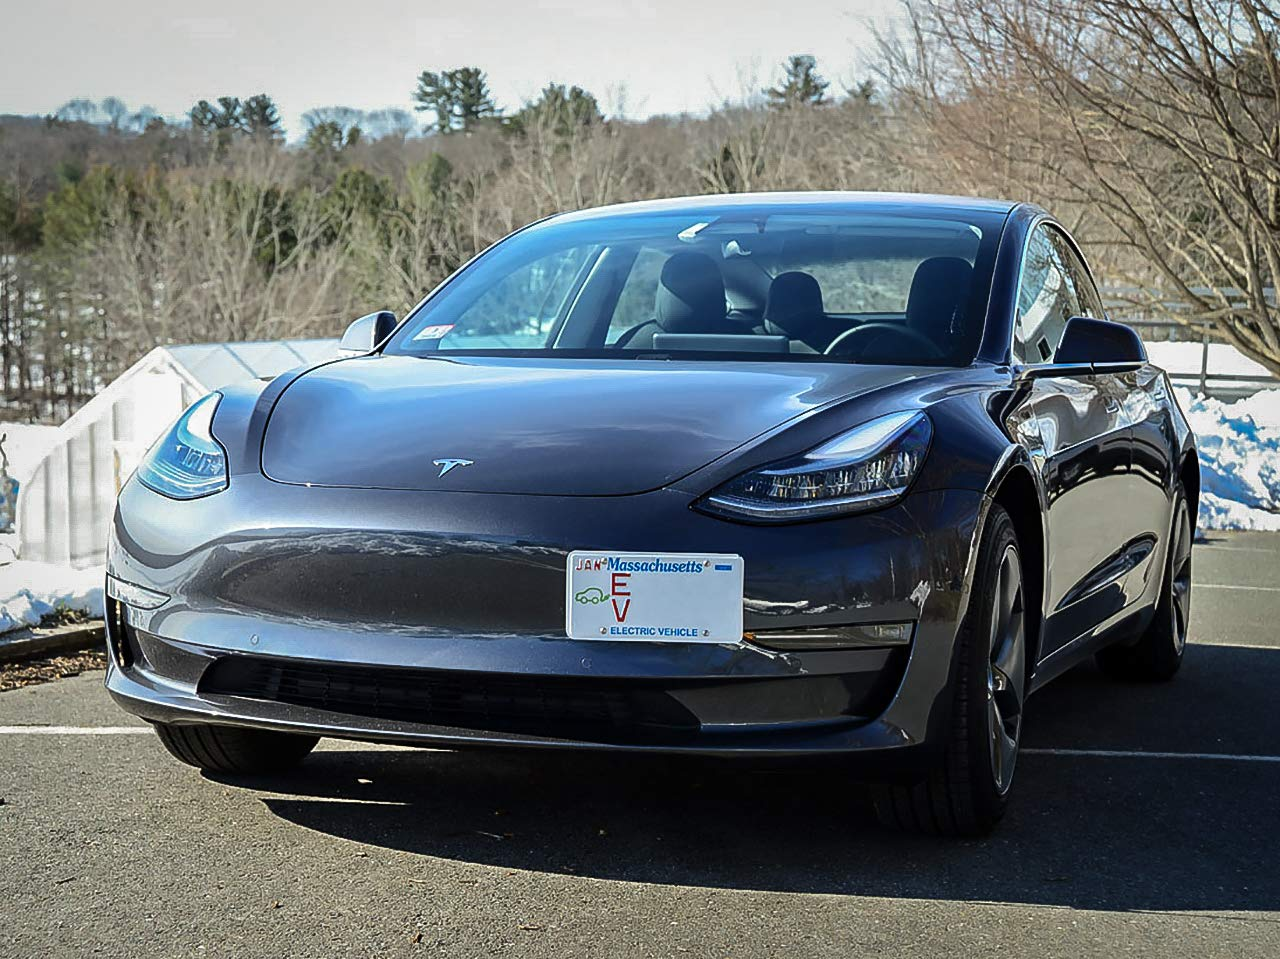 CravenSpeed Platypus License Plate Mount for Tesla Model 3 2017-2019 | No Drilling | Made of Stainless Steel & Aluminum | Made in USA by CravenSpeed (Image #9)